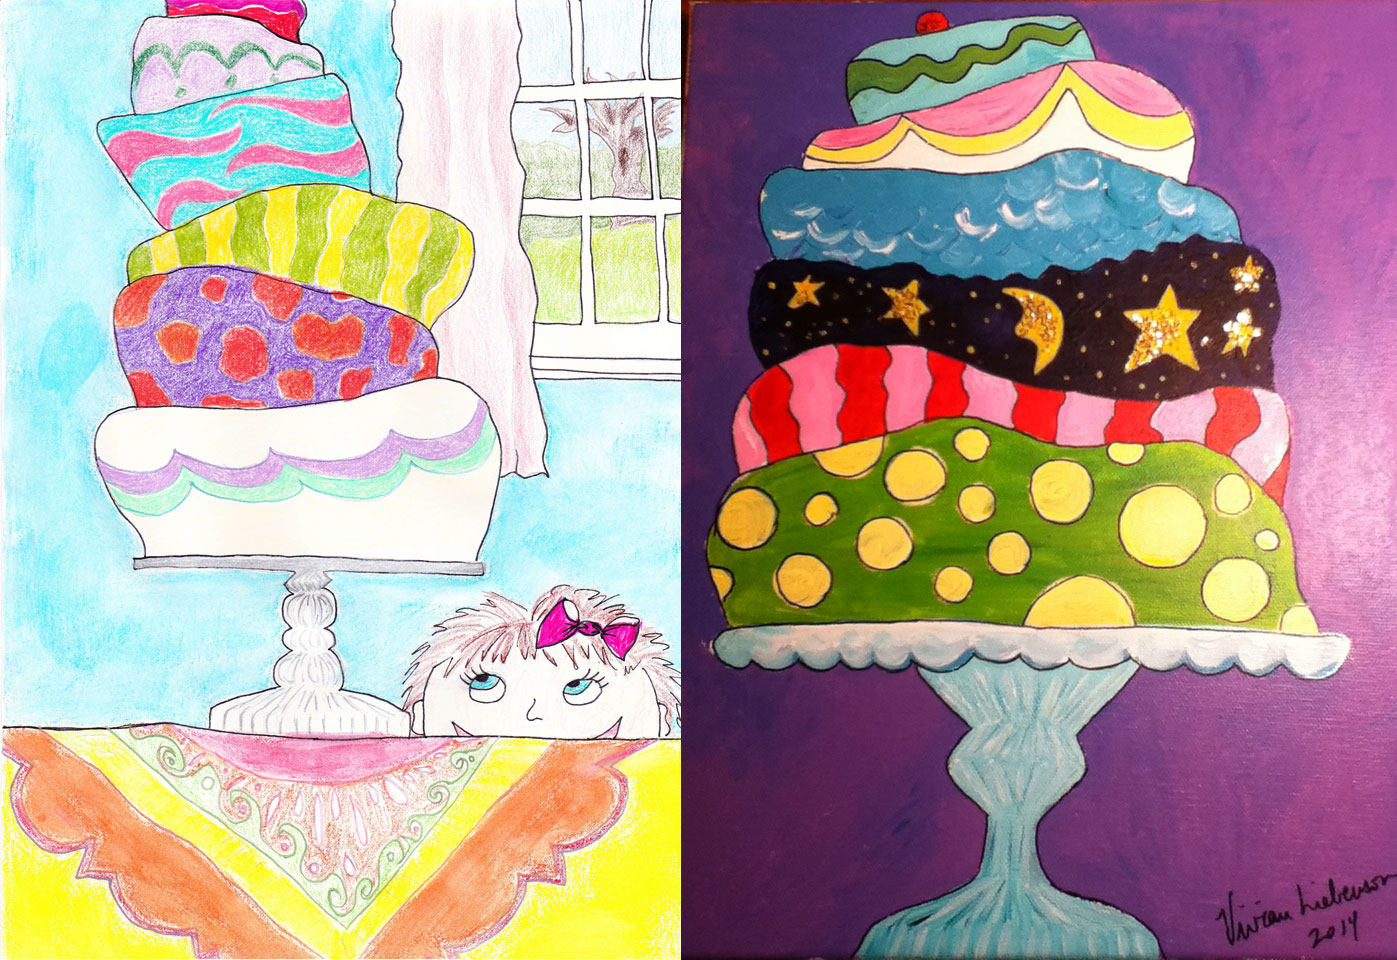 Cake drawing and painting